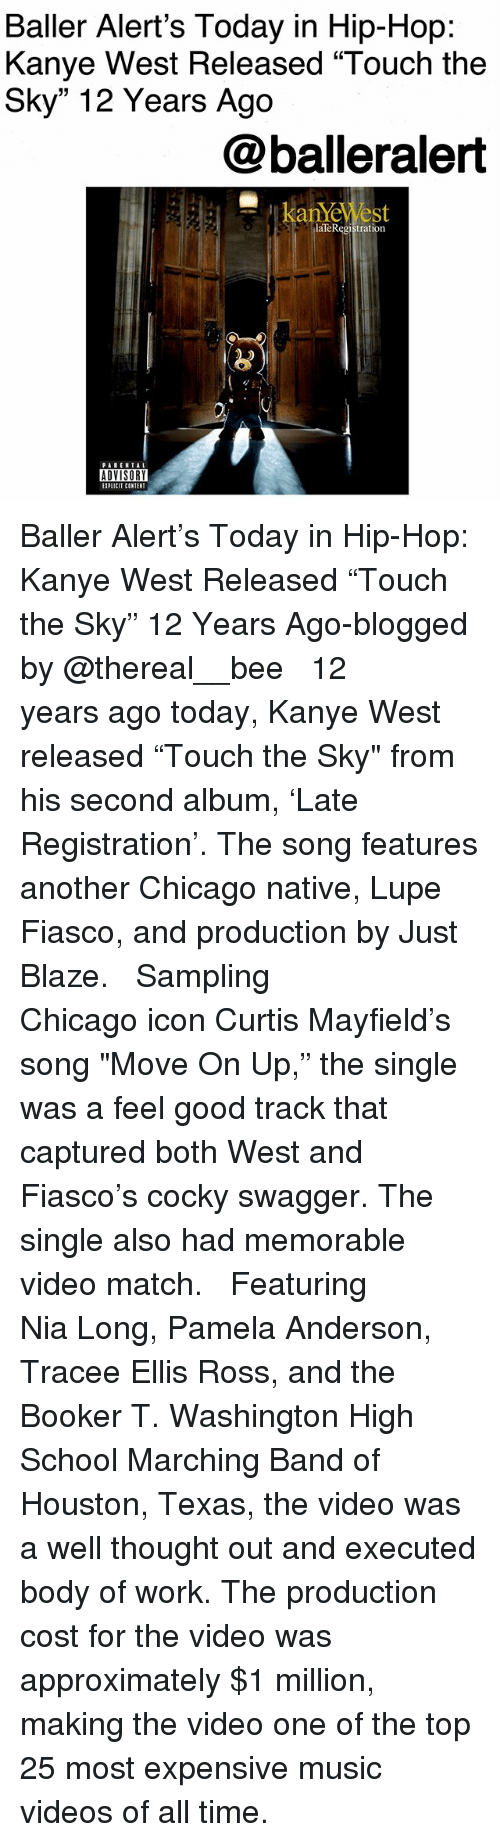 """baller alert: Baller Alert's Today in Hip-Hop:  Kanye West Released """"Touch the  Sky"""" 12 Years Ago  @balleralert  laTeRegistration  ADVISORY  IPLICIT CONTENT Baller Alert's Today in Hip-Hop: Kanye West Released """"Touch the Sky"""" 12 Years Ago-blogged by @thereal__bee ⠀⠀⠀⠀⠀⠀⠀⠀⠀ ⠀⠀ 12 years ago today, Kanye West released """"Touch the Sky"""" from his second album, 'Late Registration'. The song features another Chicago native, Lupe Fiasco, and production by Just Blaze. ⠀⠀⠀⠀⠀⠀⠀⠀⠀ ⠀⠀ Sampling Chicago icon Curtis Mayfield's song """"Move On Up,"""" the single was a feel good track that captured both West and Fiasco's cocky swagger. The single also had memorable video match. ⠀⠀⠀⠀⠀⠀⠀⠀⠀ ⠀⠀ Featuring Nia Long, Pamela Anderson, Tracee Ellis Ross, and the Booker T. Washington High School Marching Band of Houston, Texas, the video was a well thought out and executed body of work. The production cost for the video was approximately $1 million, making the video one of the top 25 most expensive music videos of all time."""